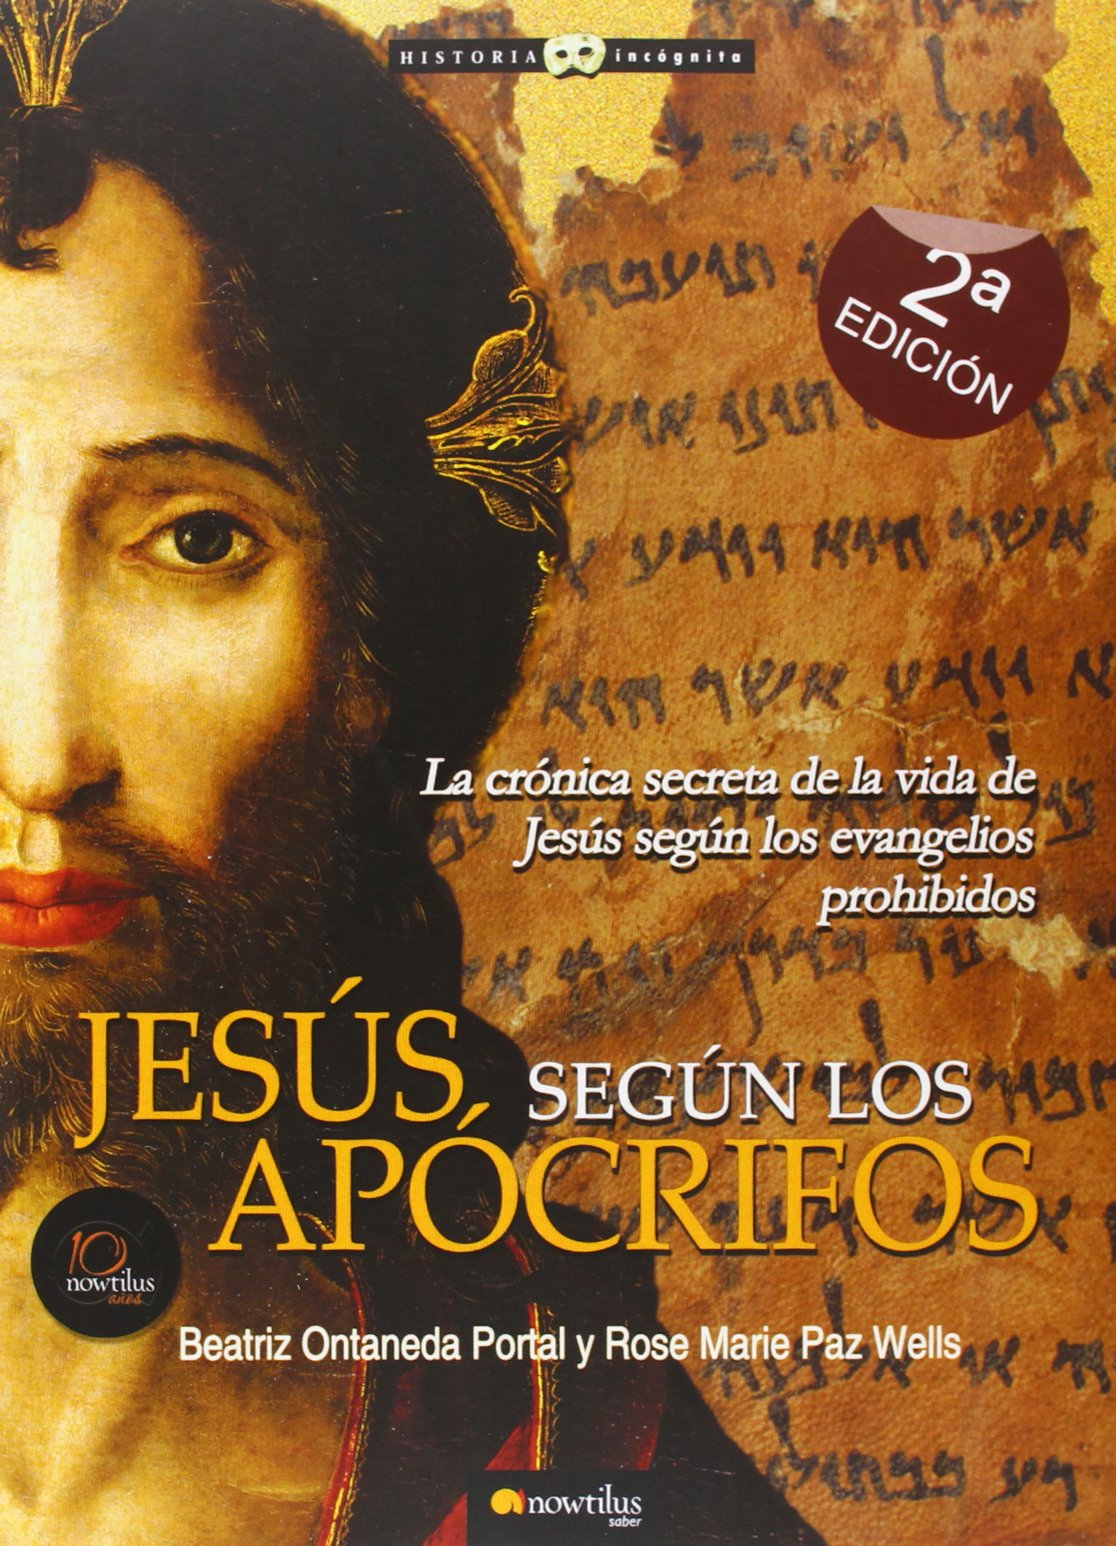 Jesus segun los Apocrifos (Historia Incognita / Unknown History) (Spanish Edition)